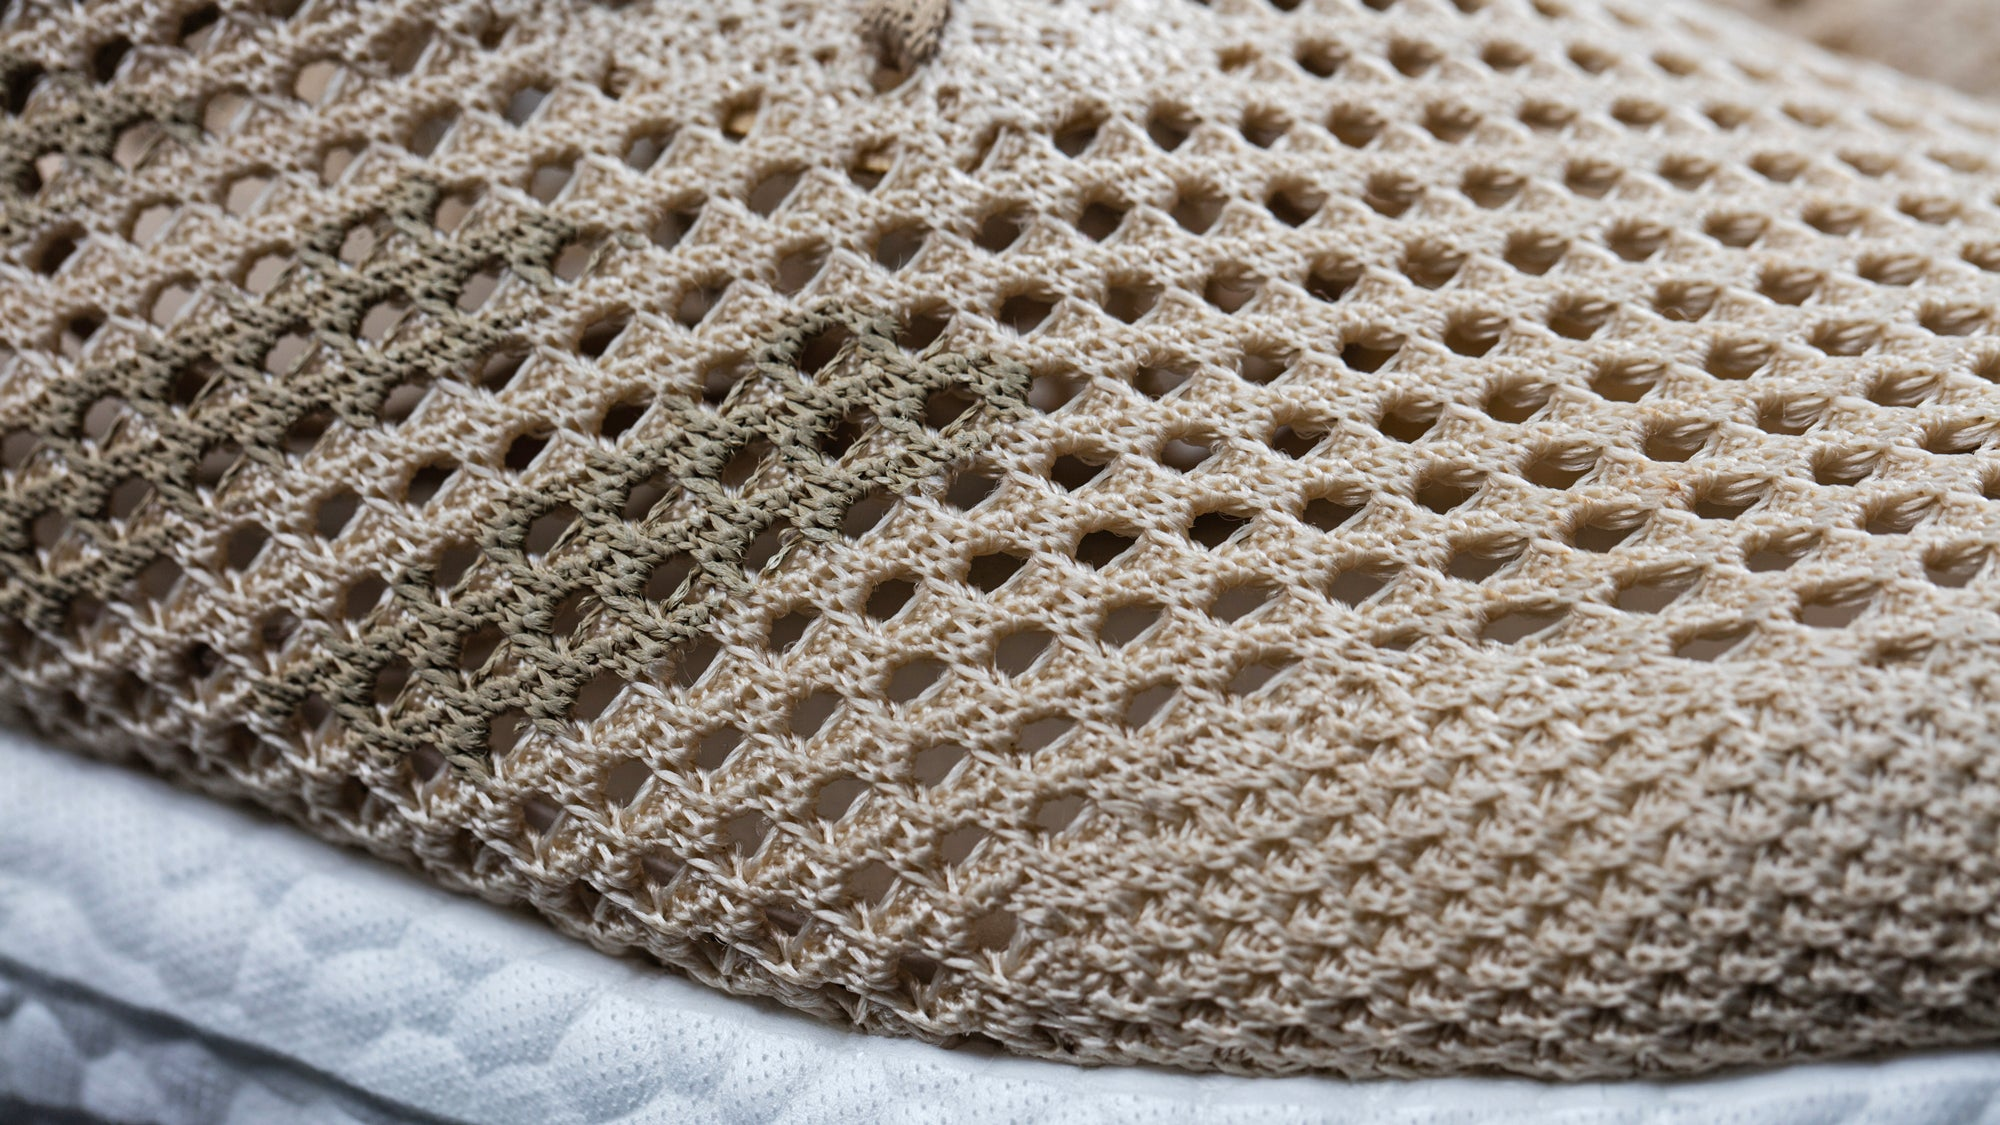 Adidas' New Biodegradable Sneakers Are Made From Ultra-Strong